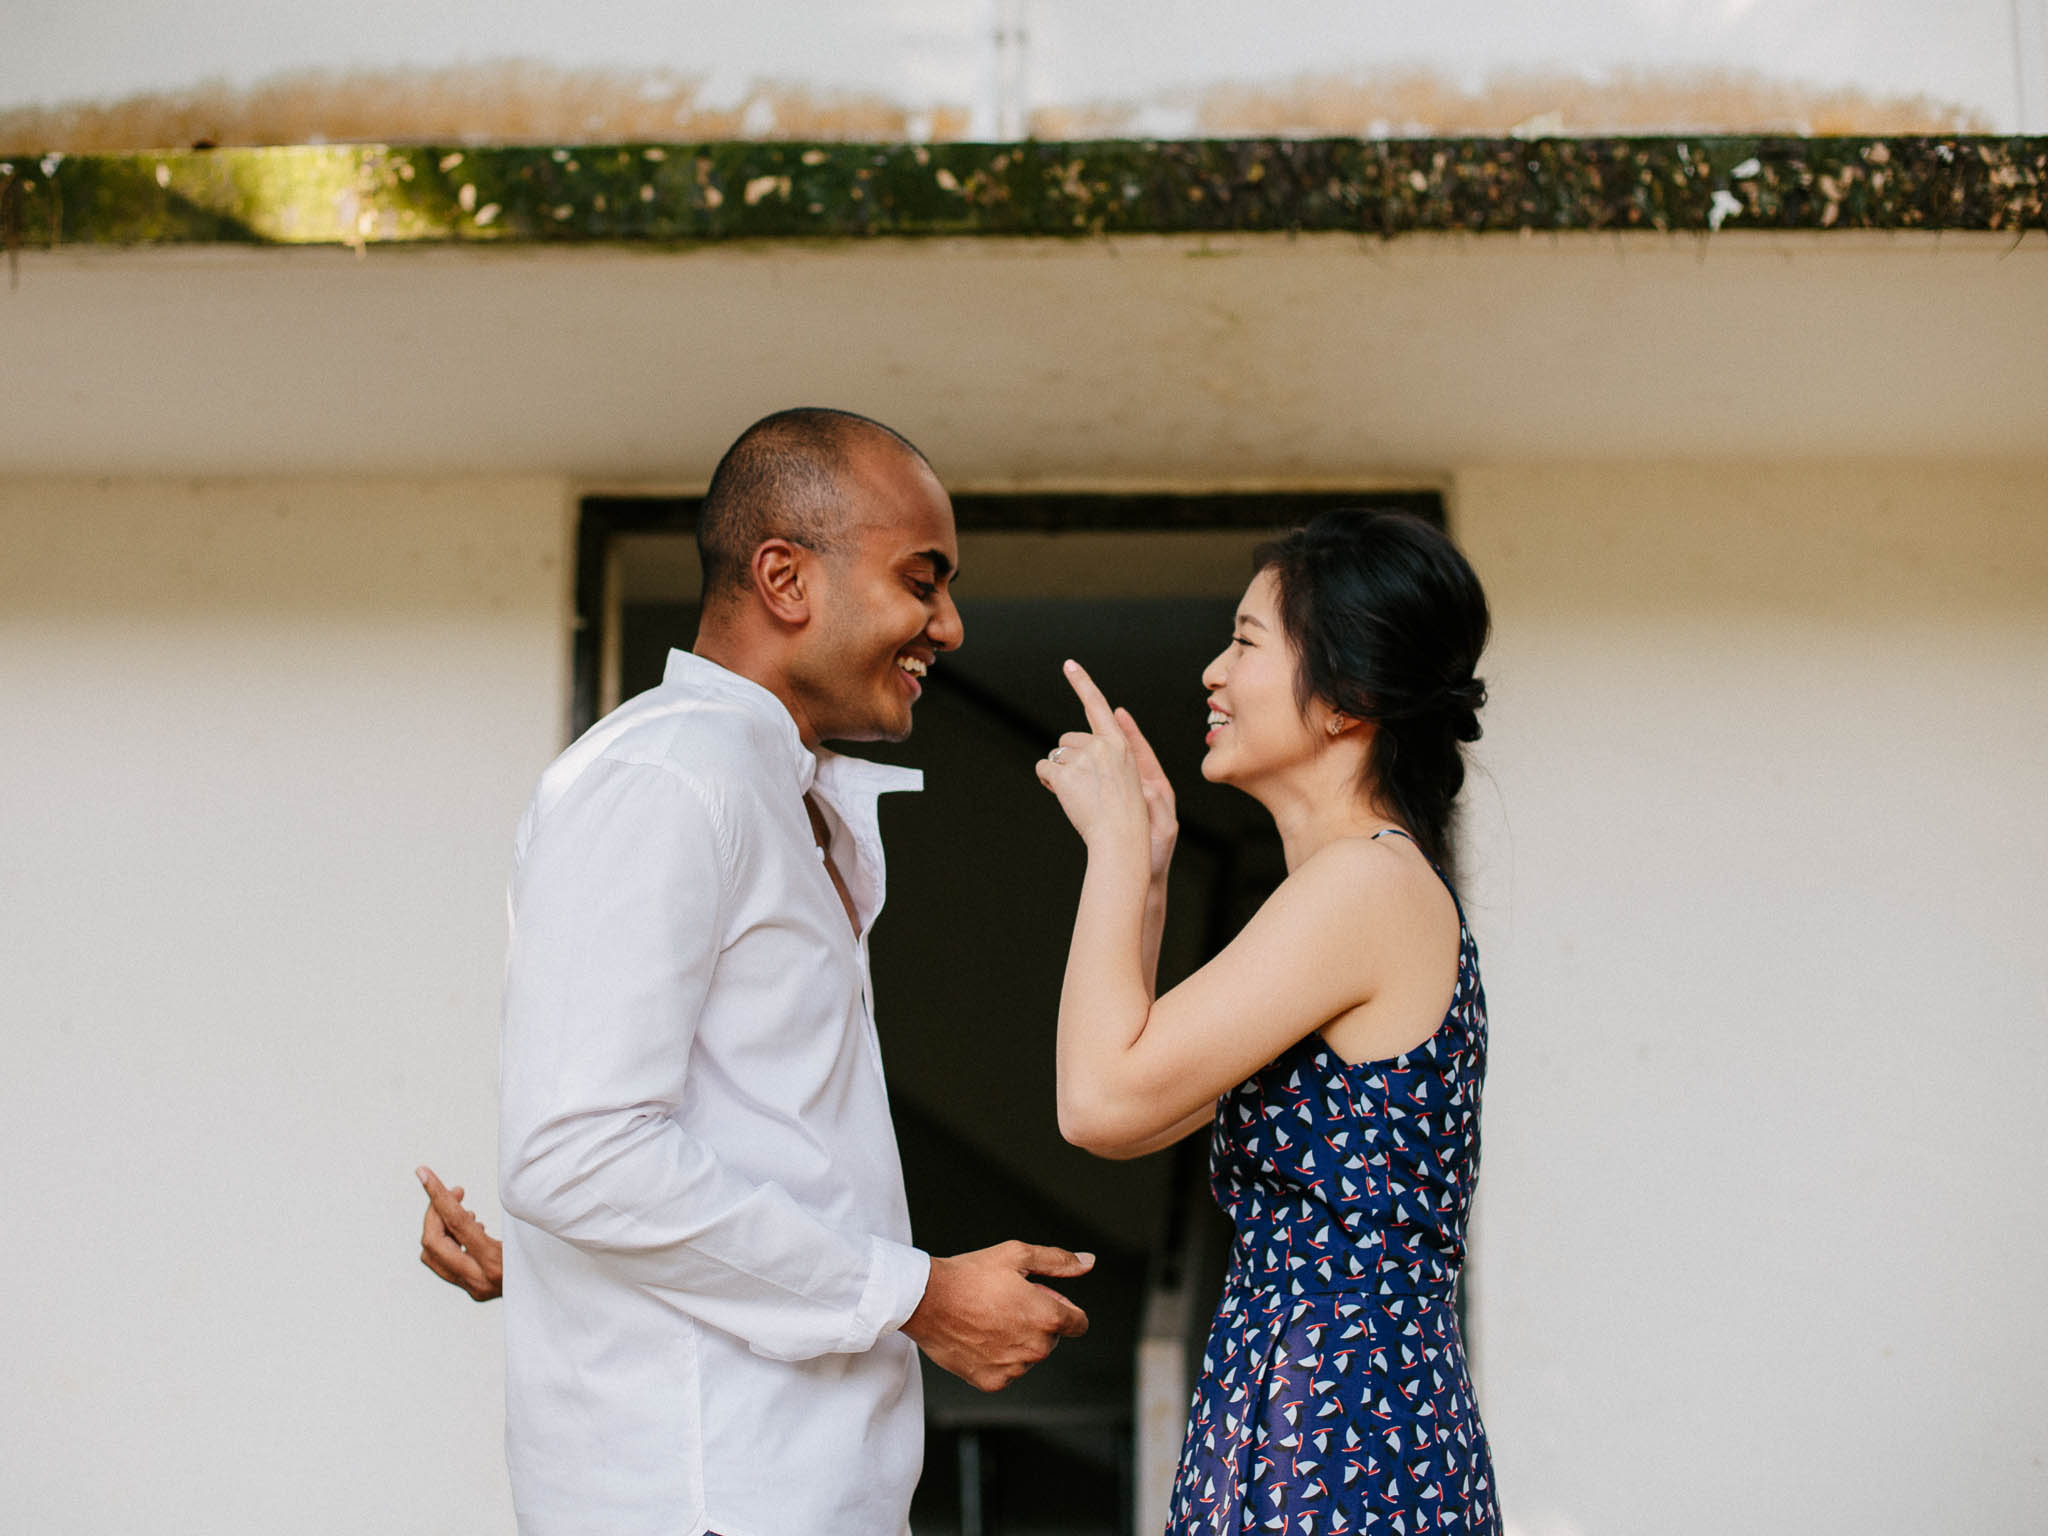 singapore-wedding-photographer-pre-wedding-jonathan-alicia-001.jpg